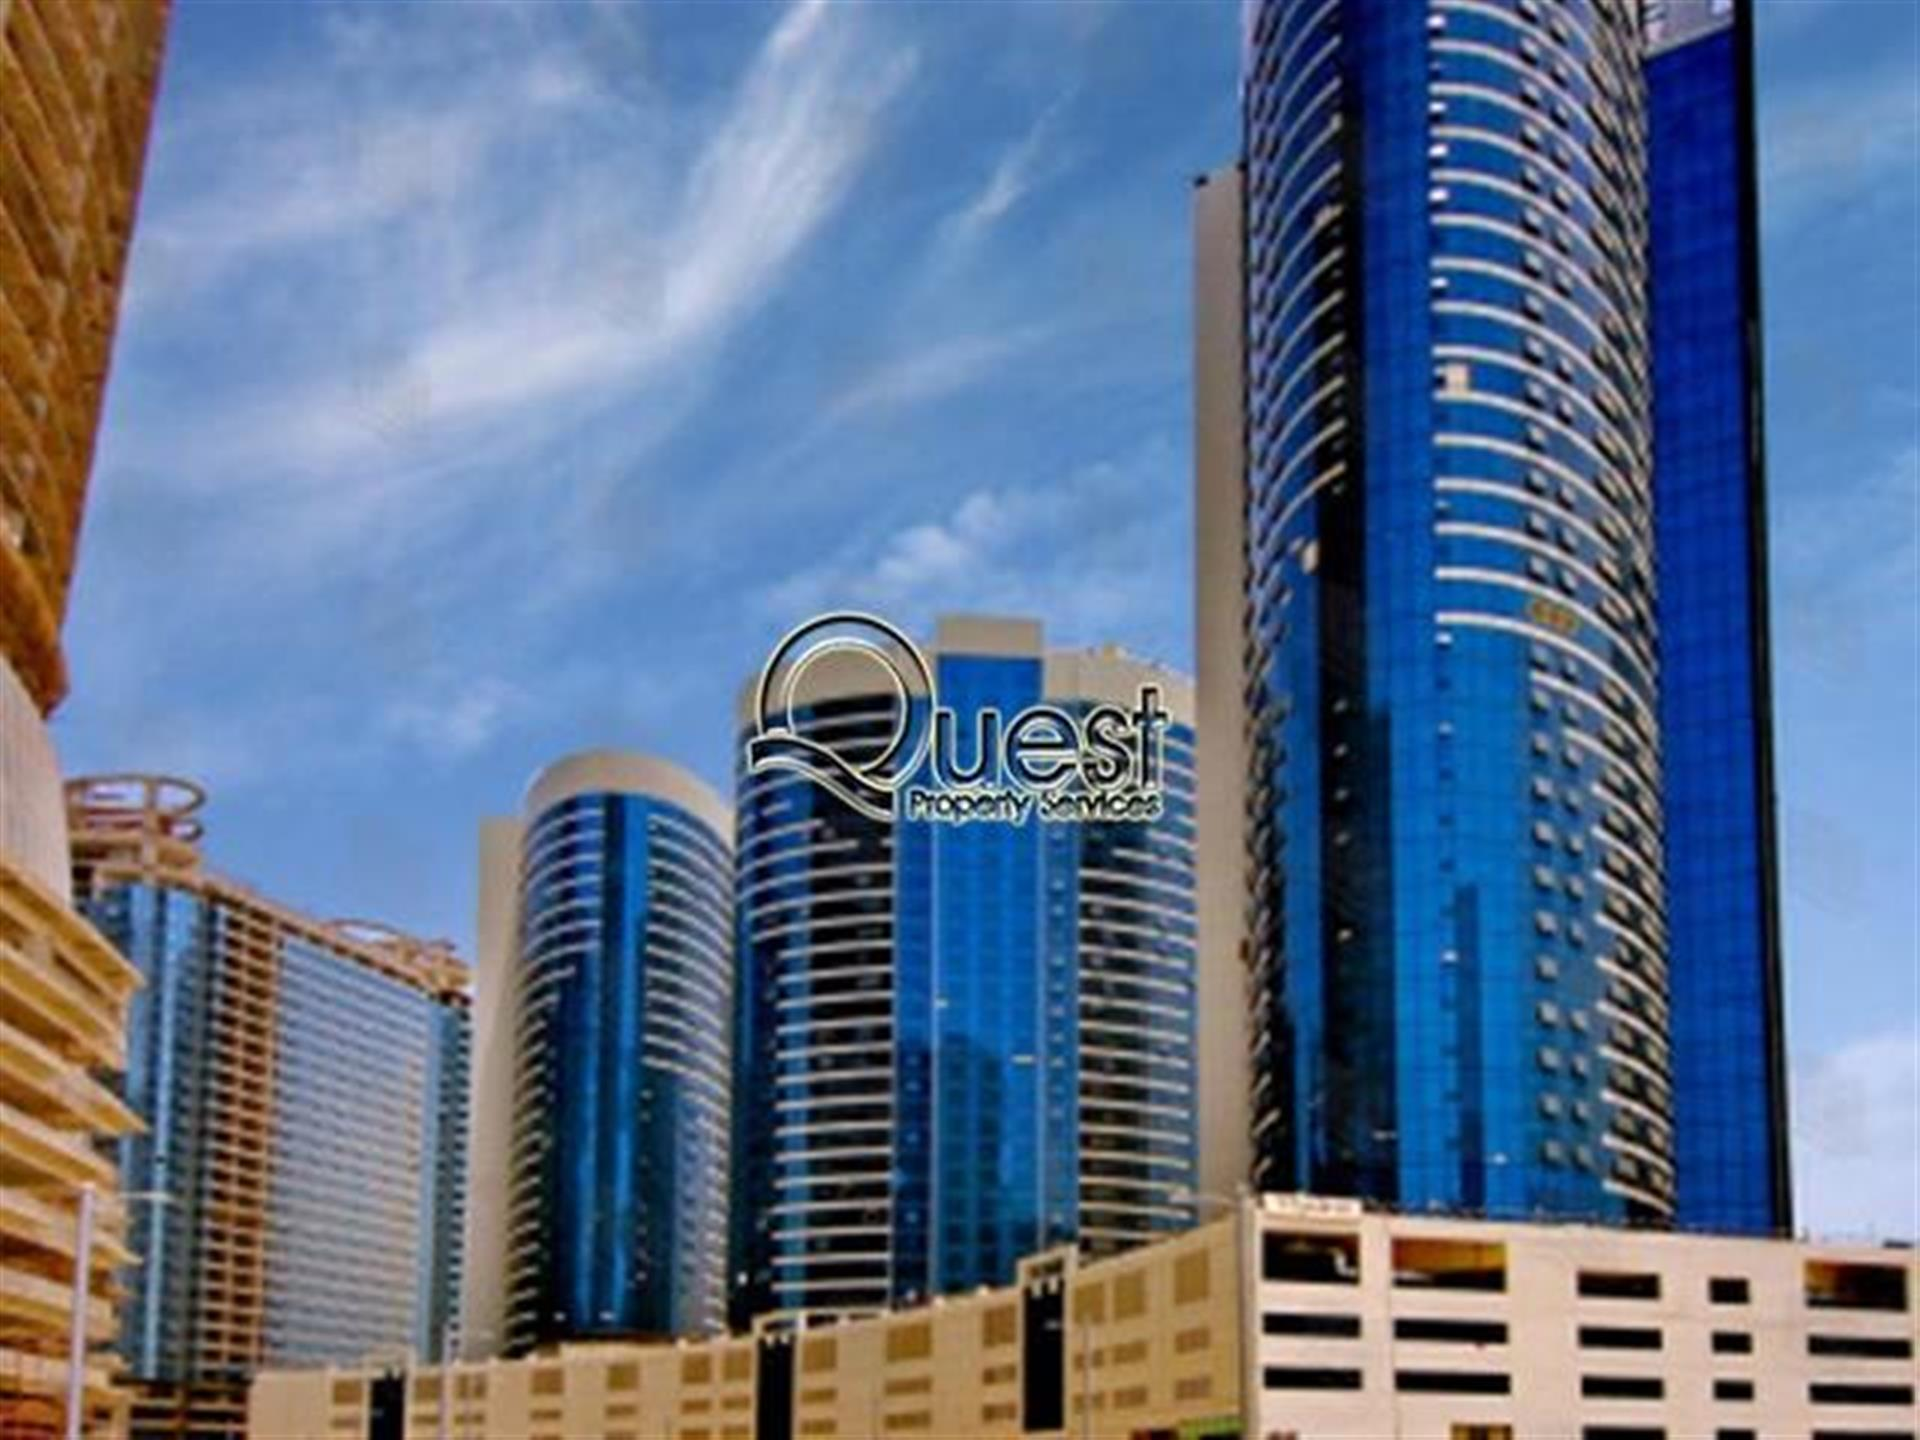 Rent property in Abu dhabi